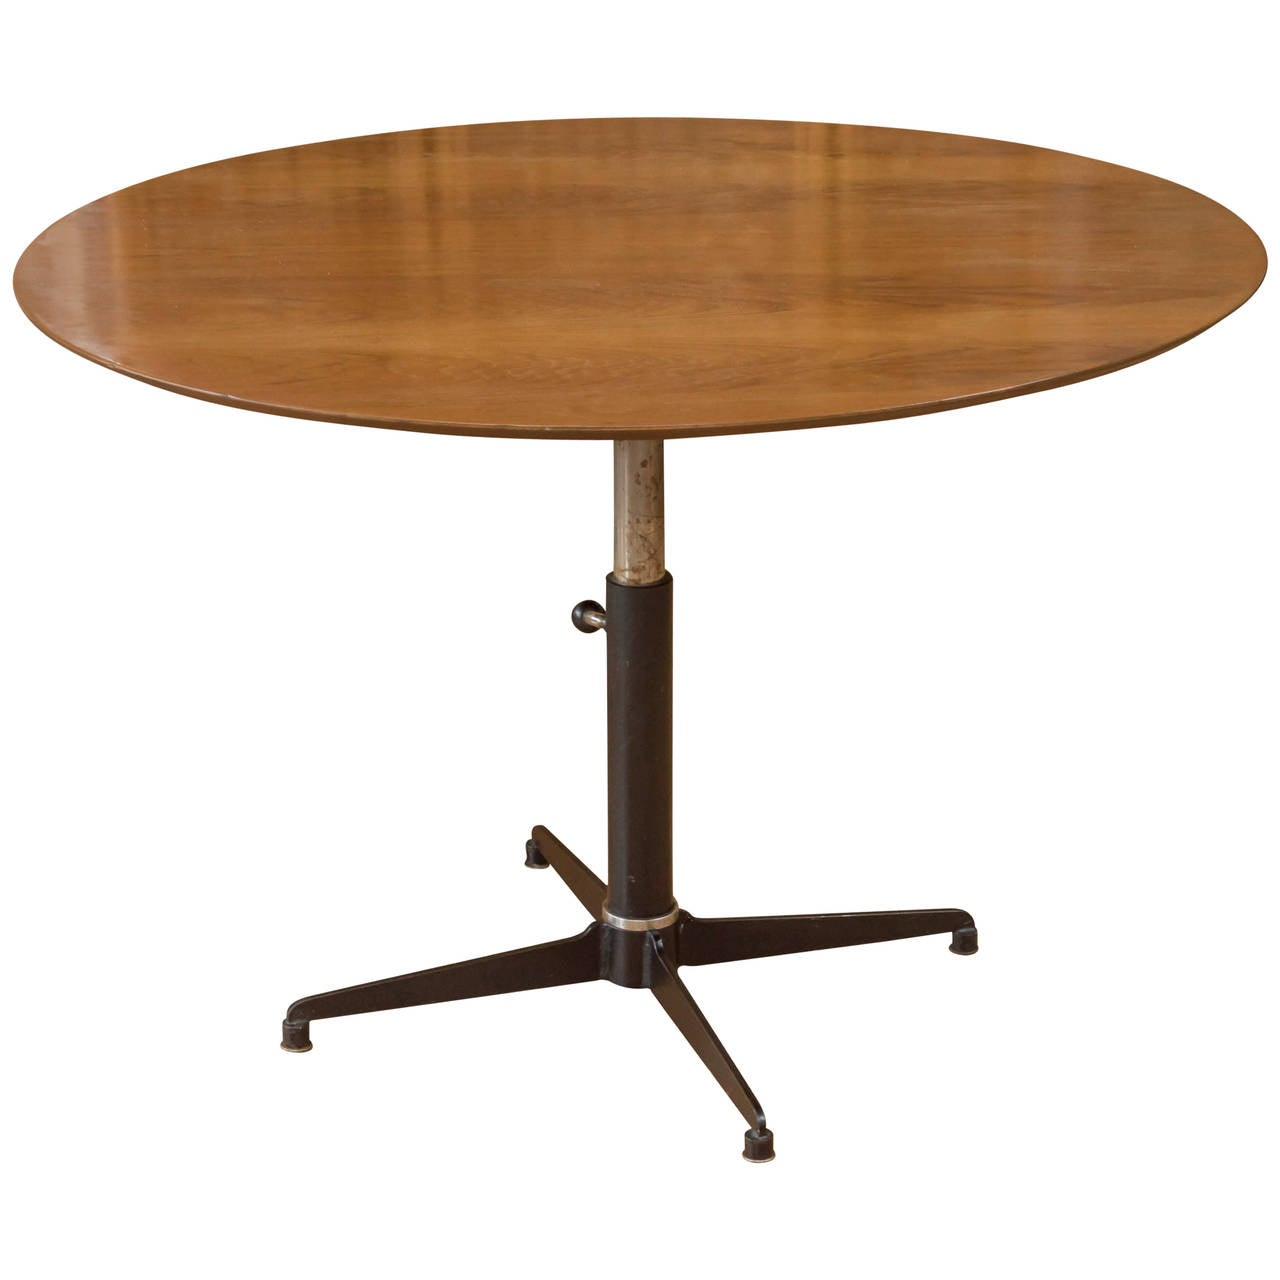 Danish Teak Adjustable Height Cocktail Table At Stdibs - Adjustable height cocktail table